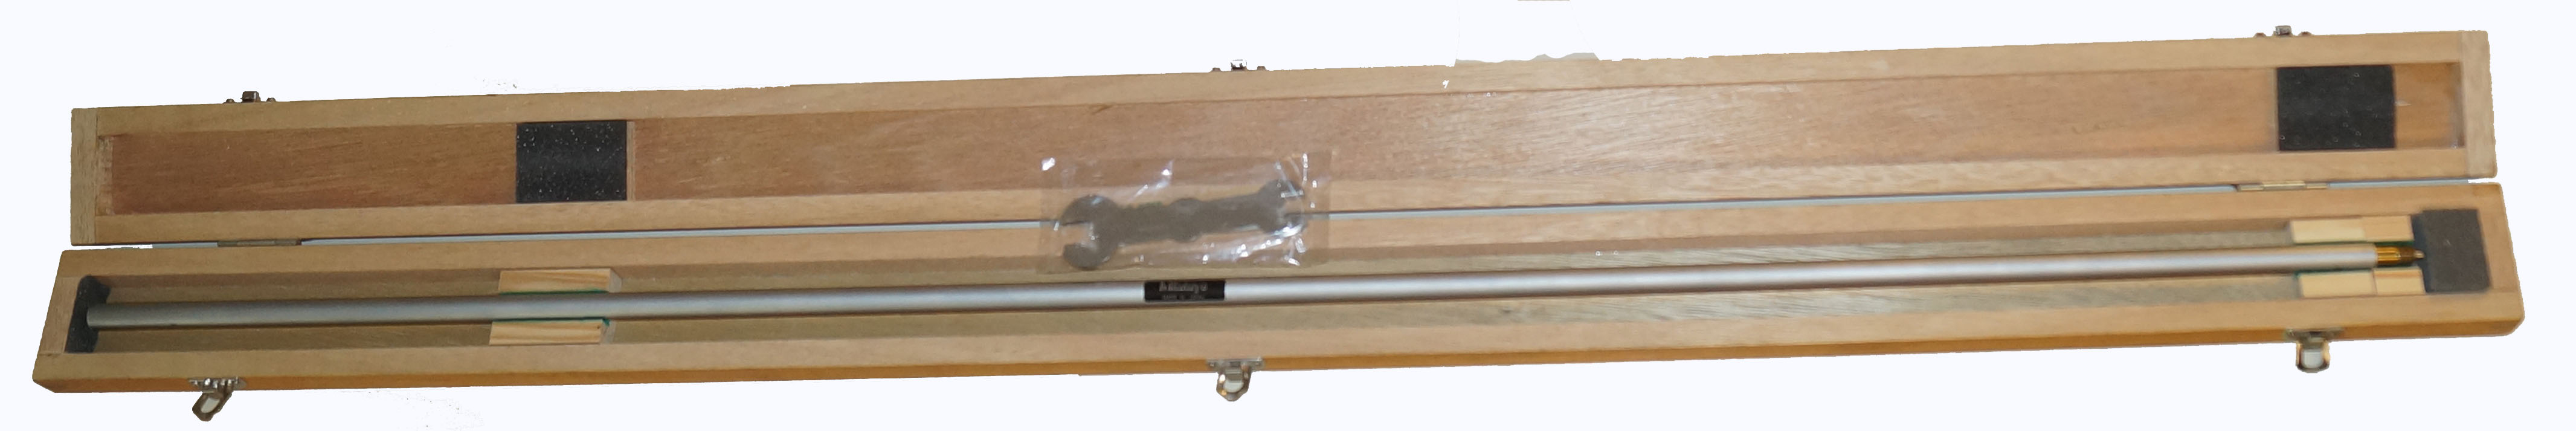 Mitutoyo Bore Gage Extension Rod 953556 1,000 mm